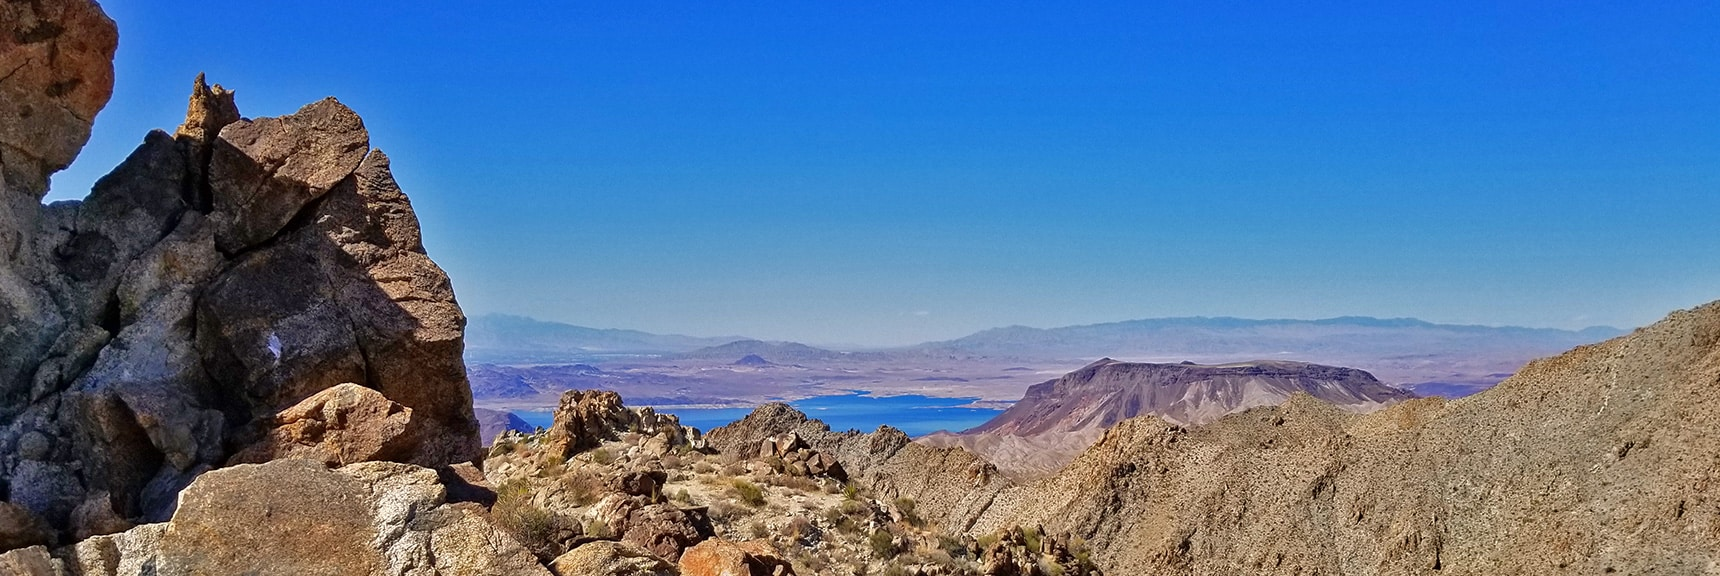 Lake Mead and Frenchman Mountain from Mt. Wilson Western Approach Ridge | Mt Wilson, Black Mountains, Arizona, Lake Mead National Recreation Area